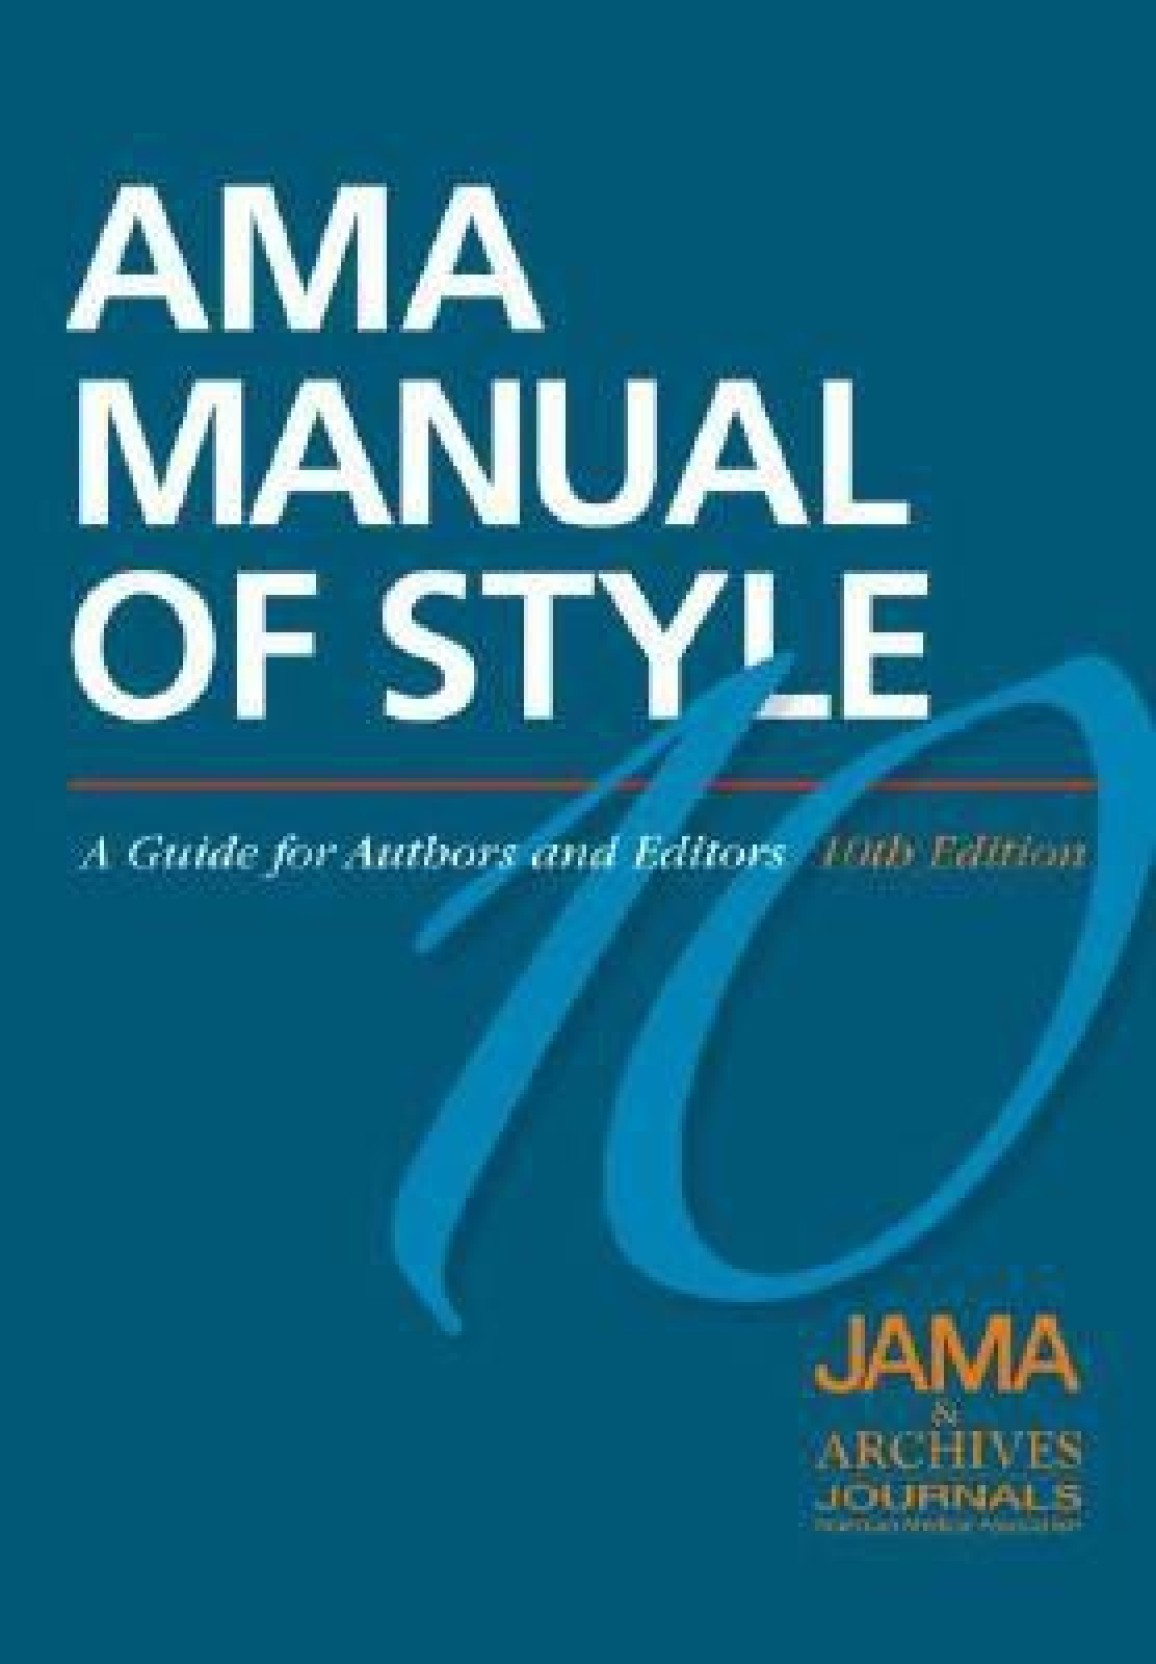 AMA MANUAL OF STYLE C (English, Book, JAMA, ARCHIVES JOURNALS)